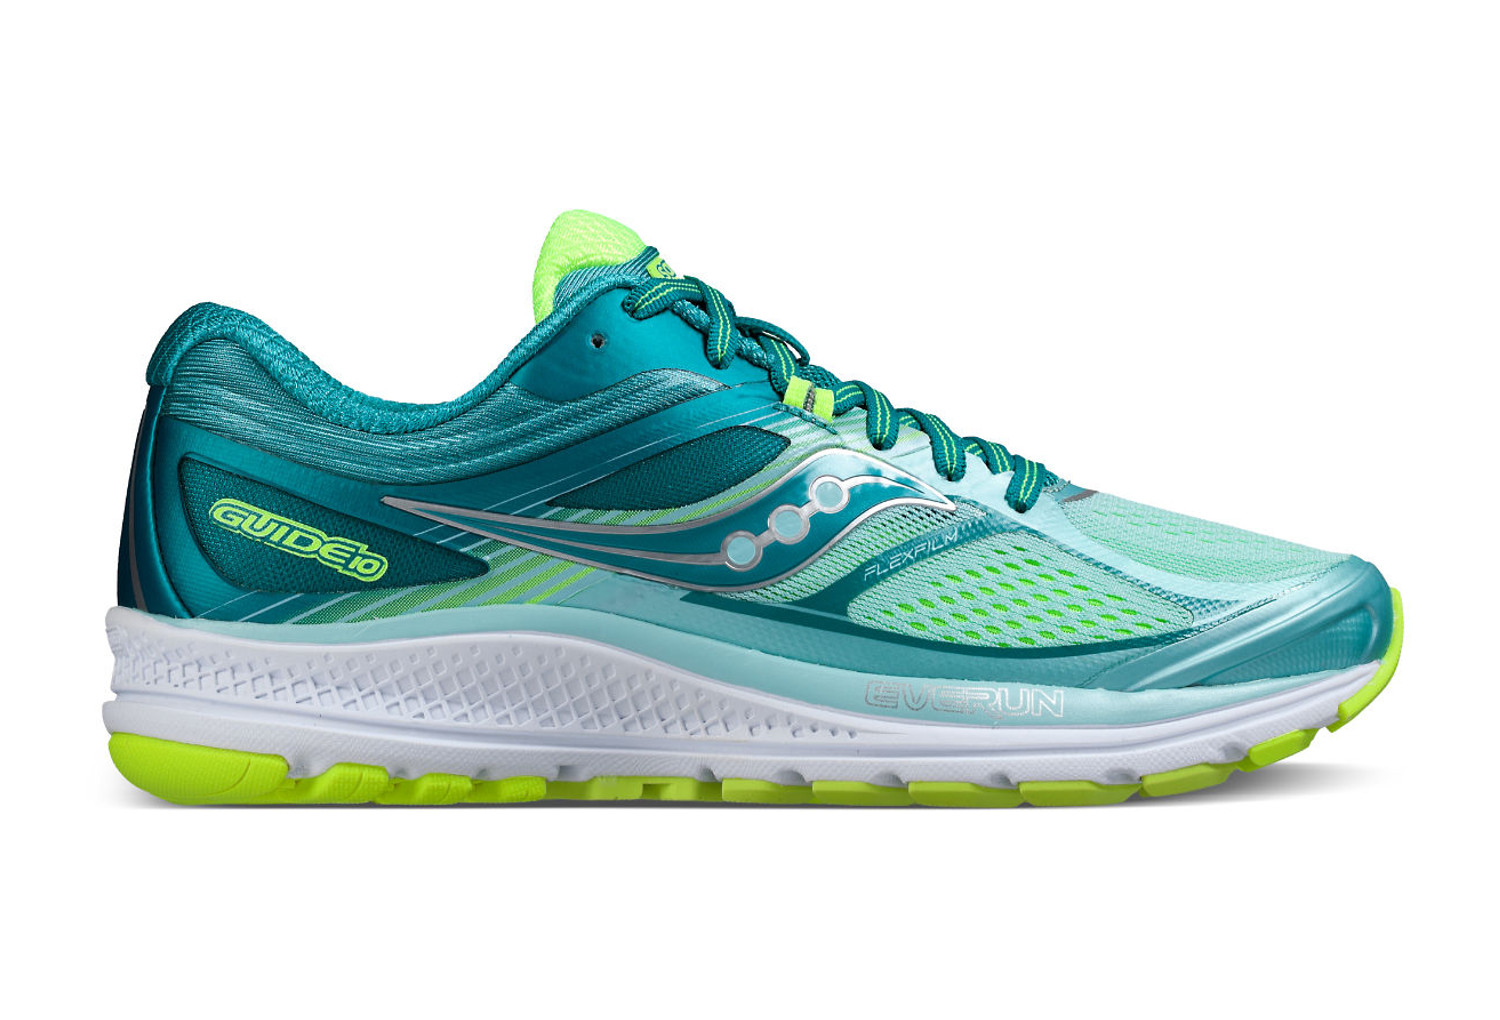 55e16f8ea0d4 SAUCONY GUIDE 10 Shoes Women Blue Yellow